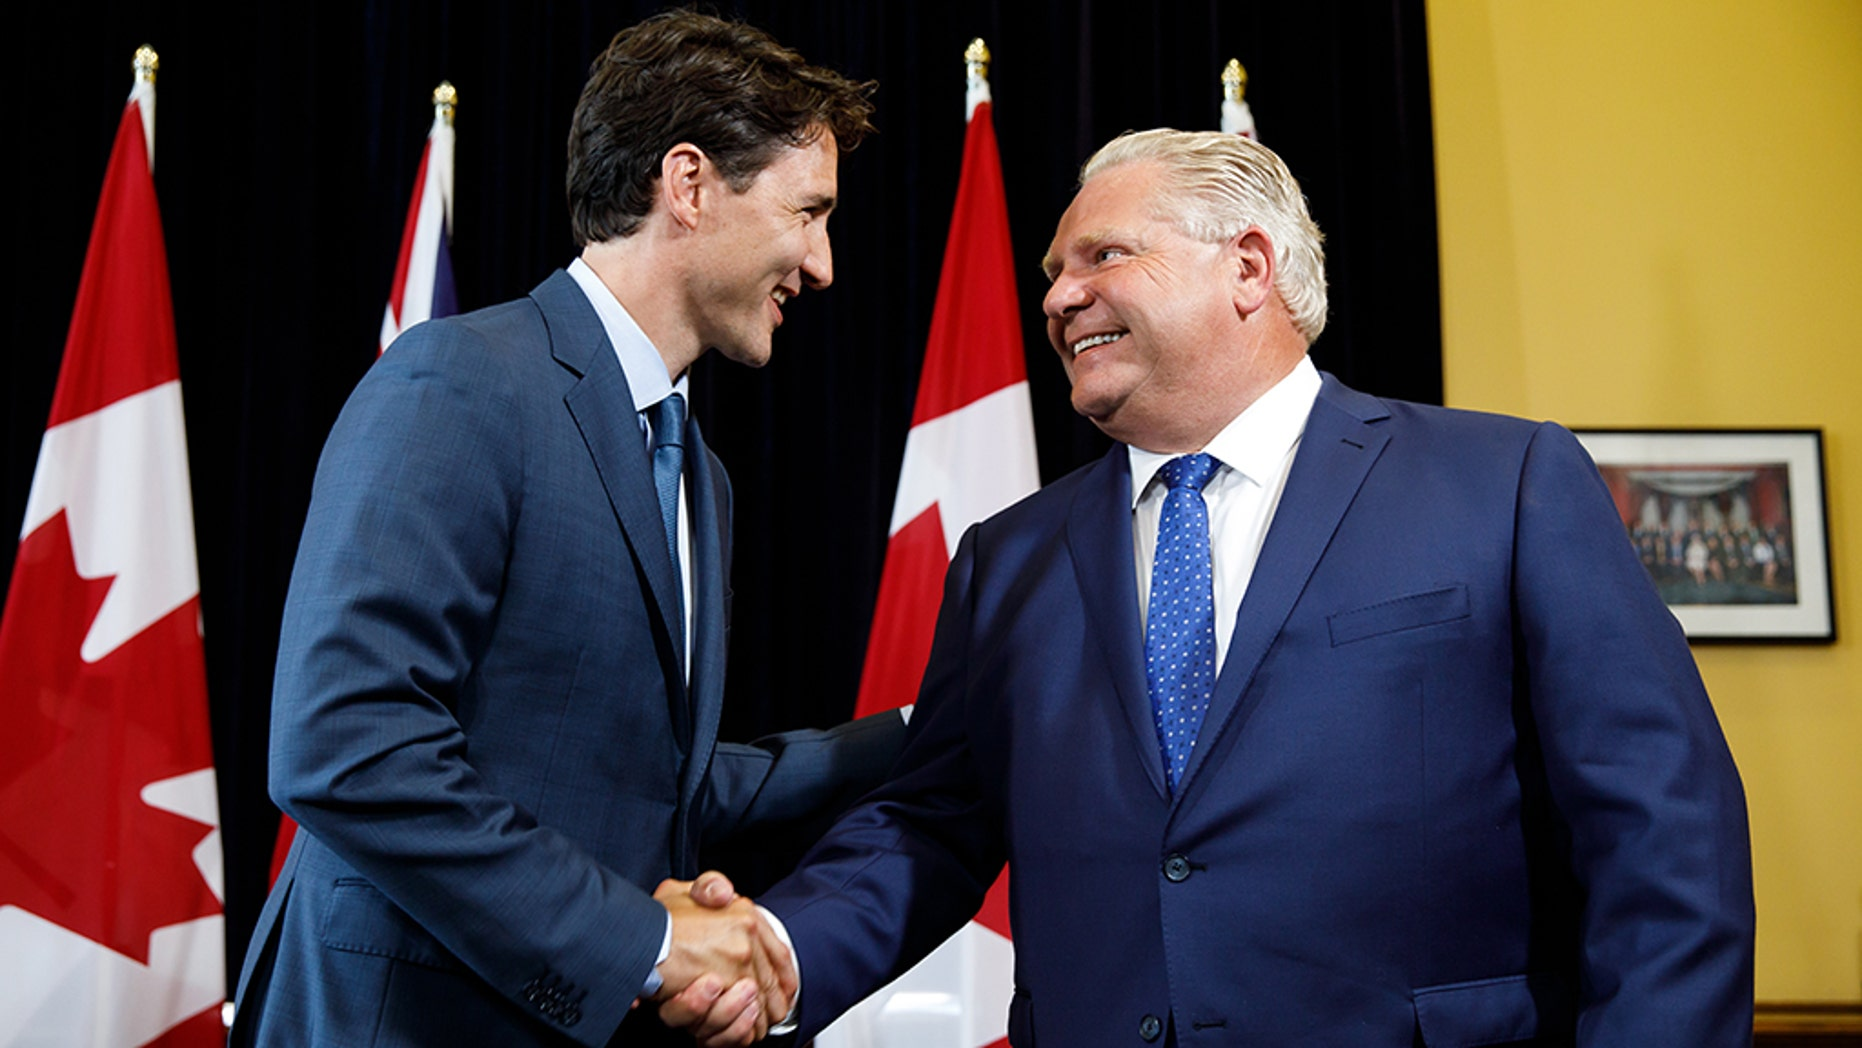 Civil for now: Prime Minister Trudeau meets with Premier Doug Ford in Toronto earlier this year; they have been at loggerheads over Trudeau's carbon tax